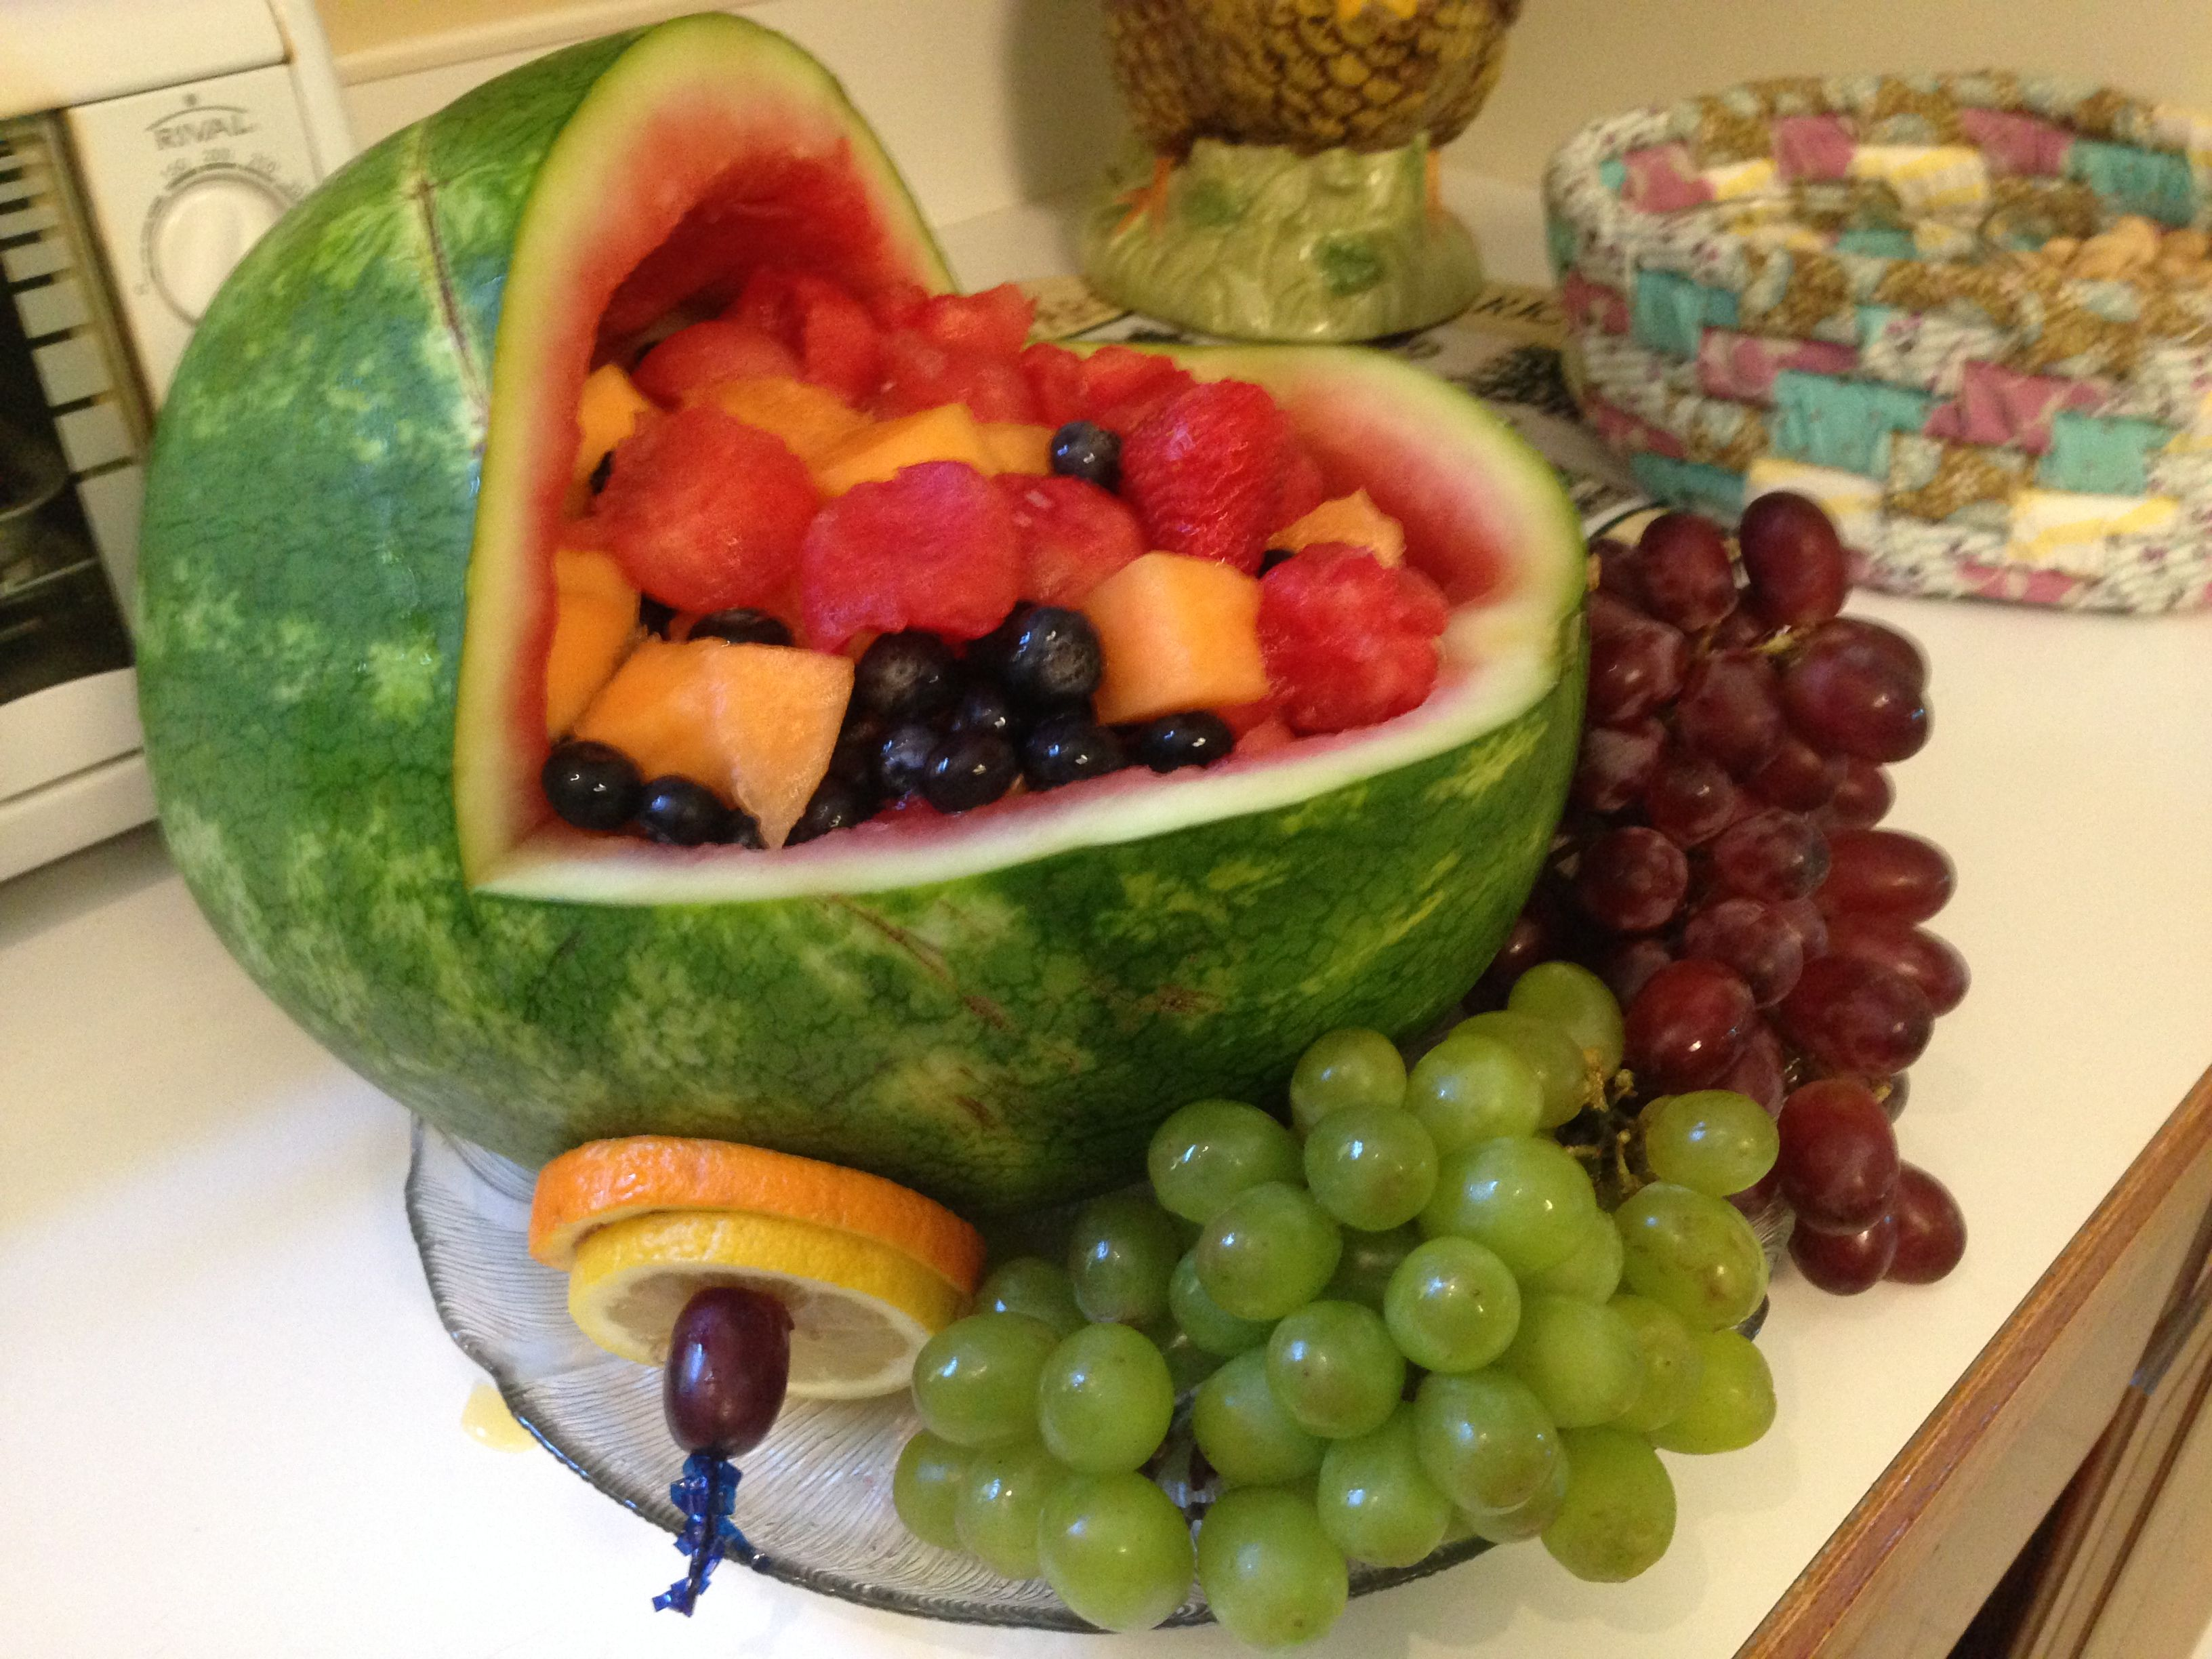 Watermelon Baby Buggy Fruit Bowl created by Becky Baxa May 206 ...